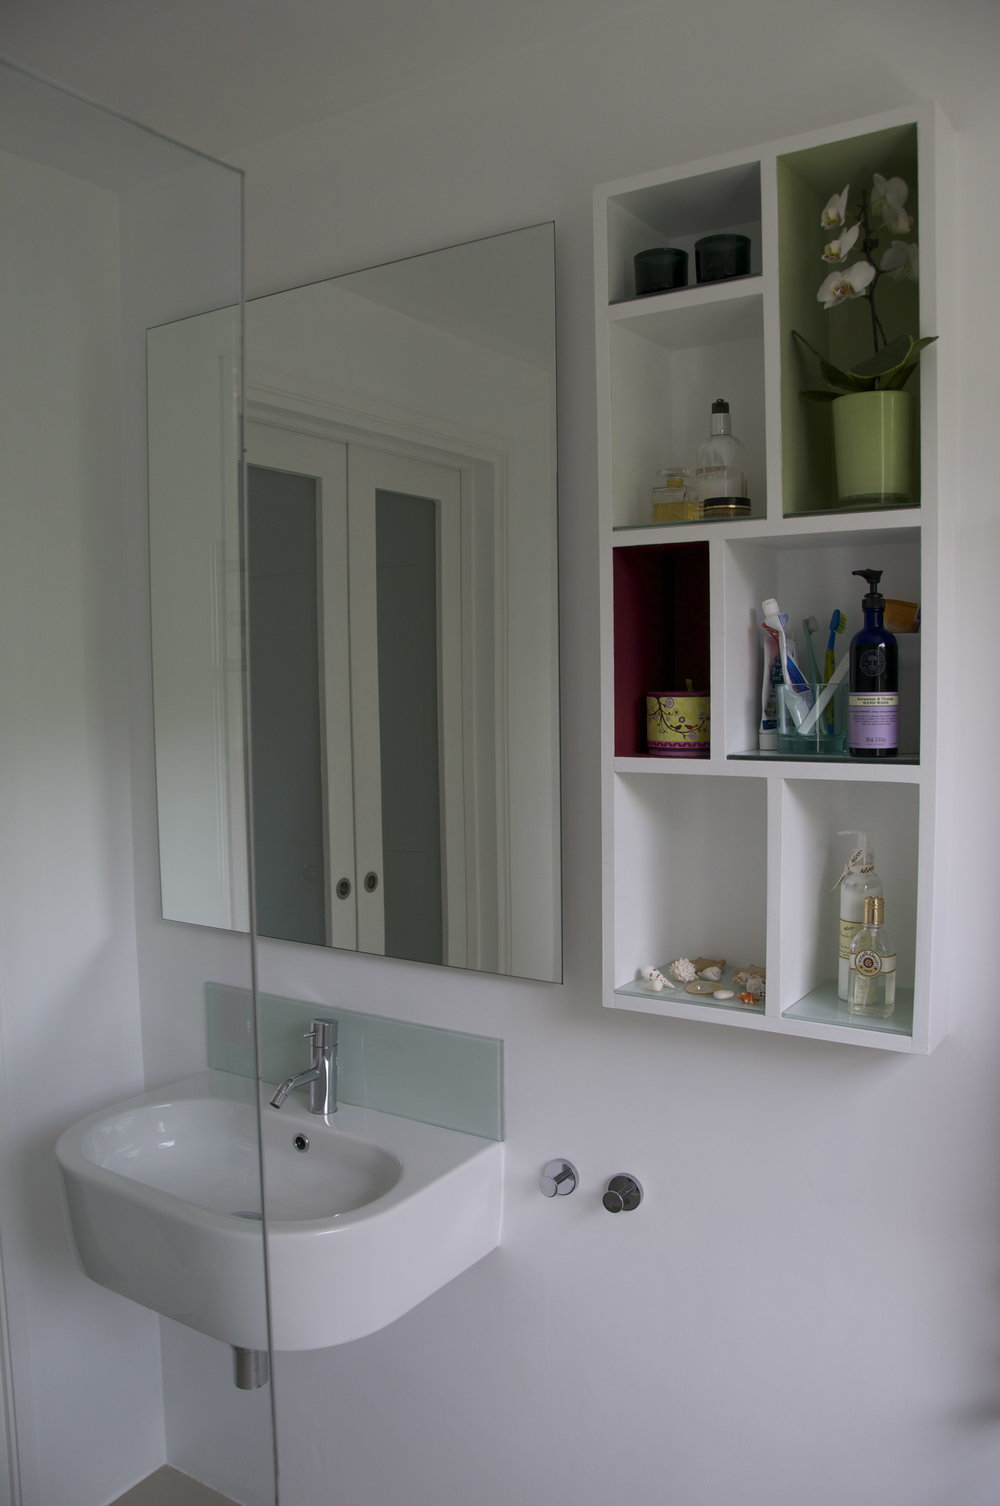 STV-sink mirror shelves from shower P.jpg